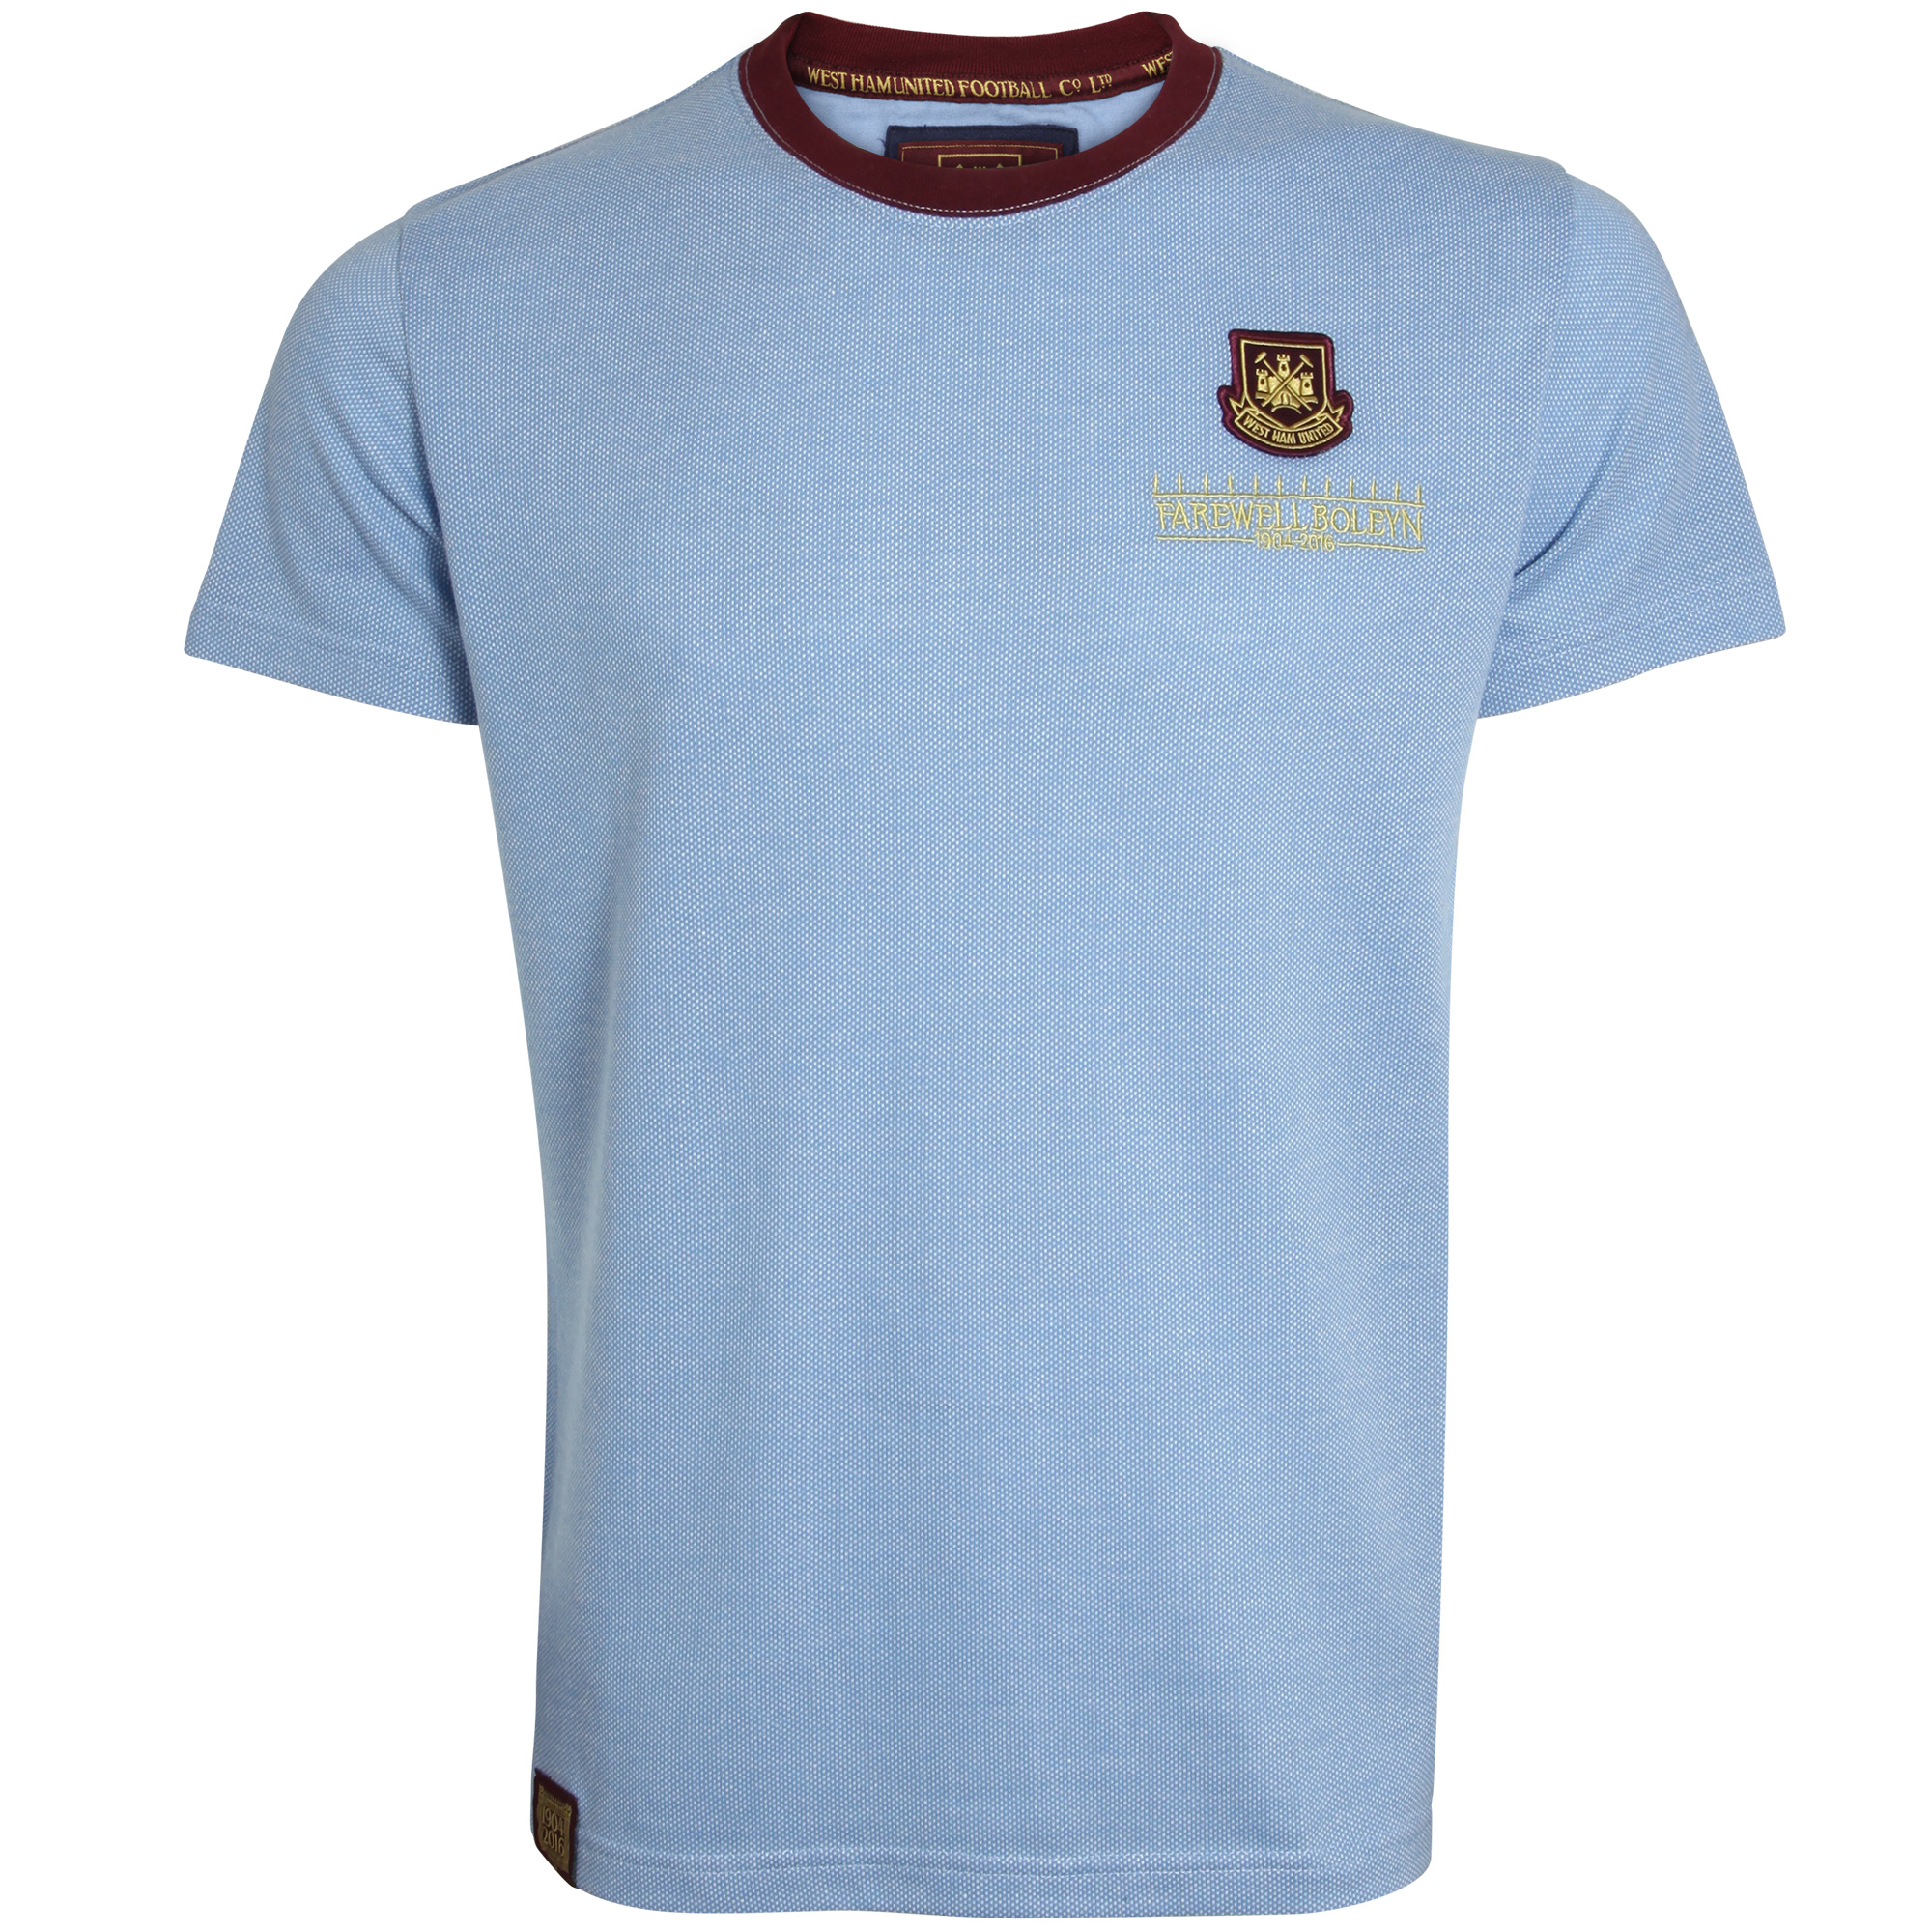 FAREWELL BOLEYN - ADULT SKY TEXTURED T-SHIRT